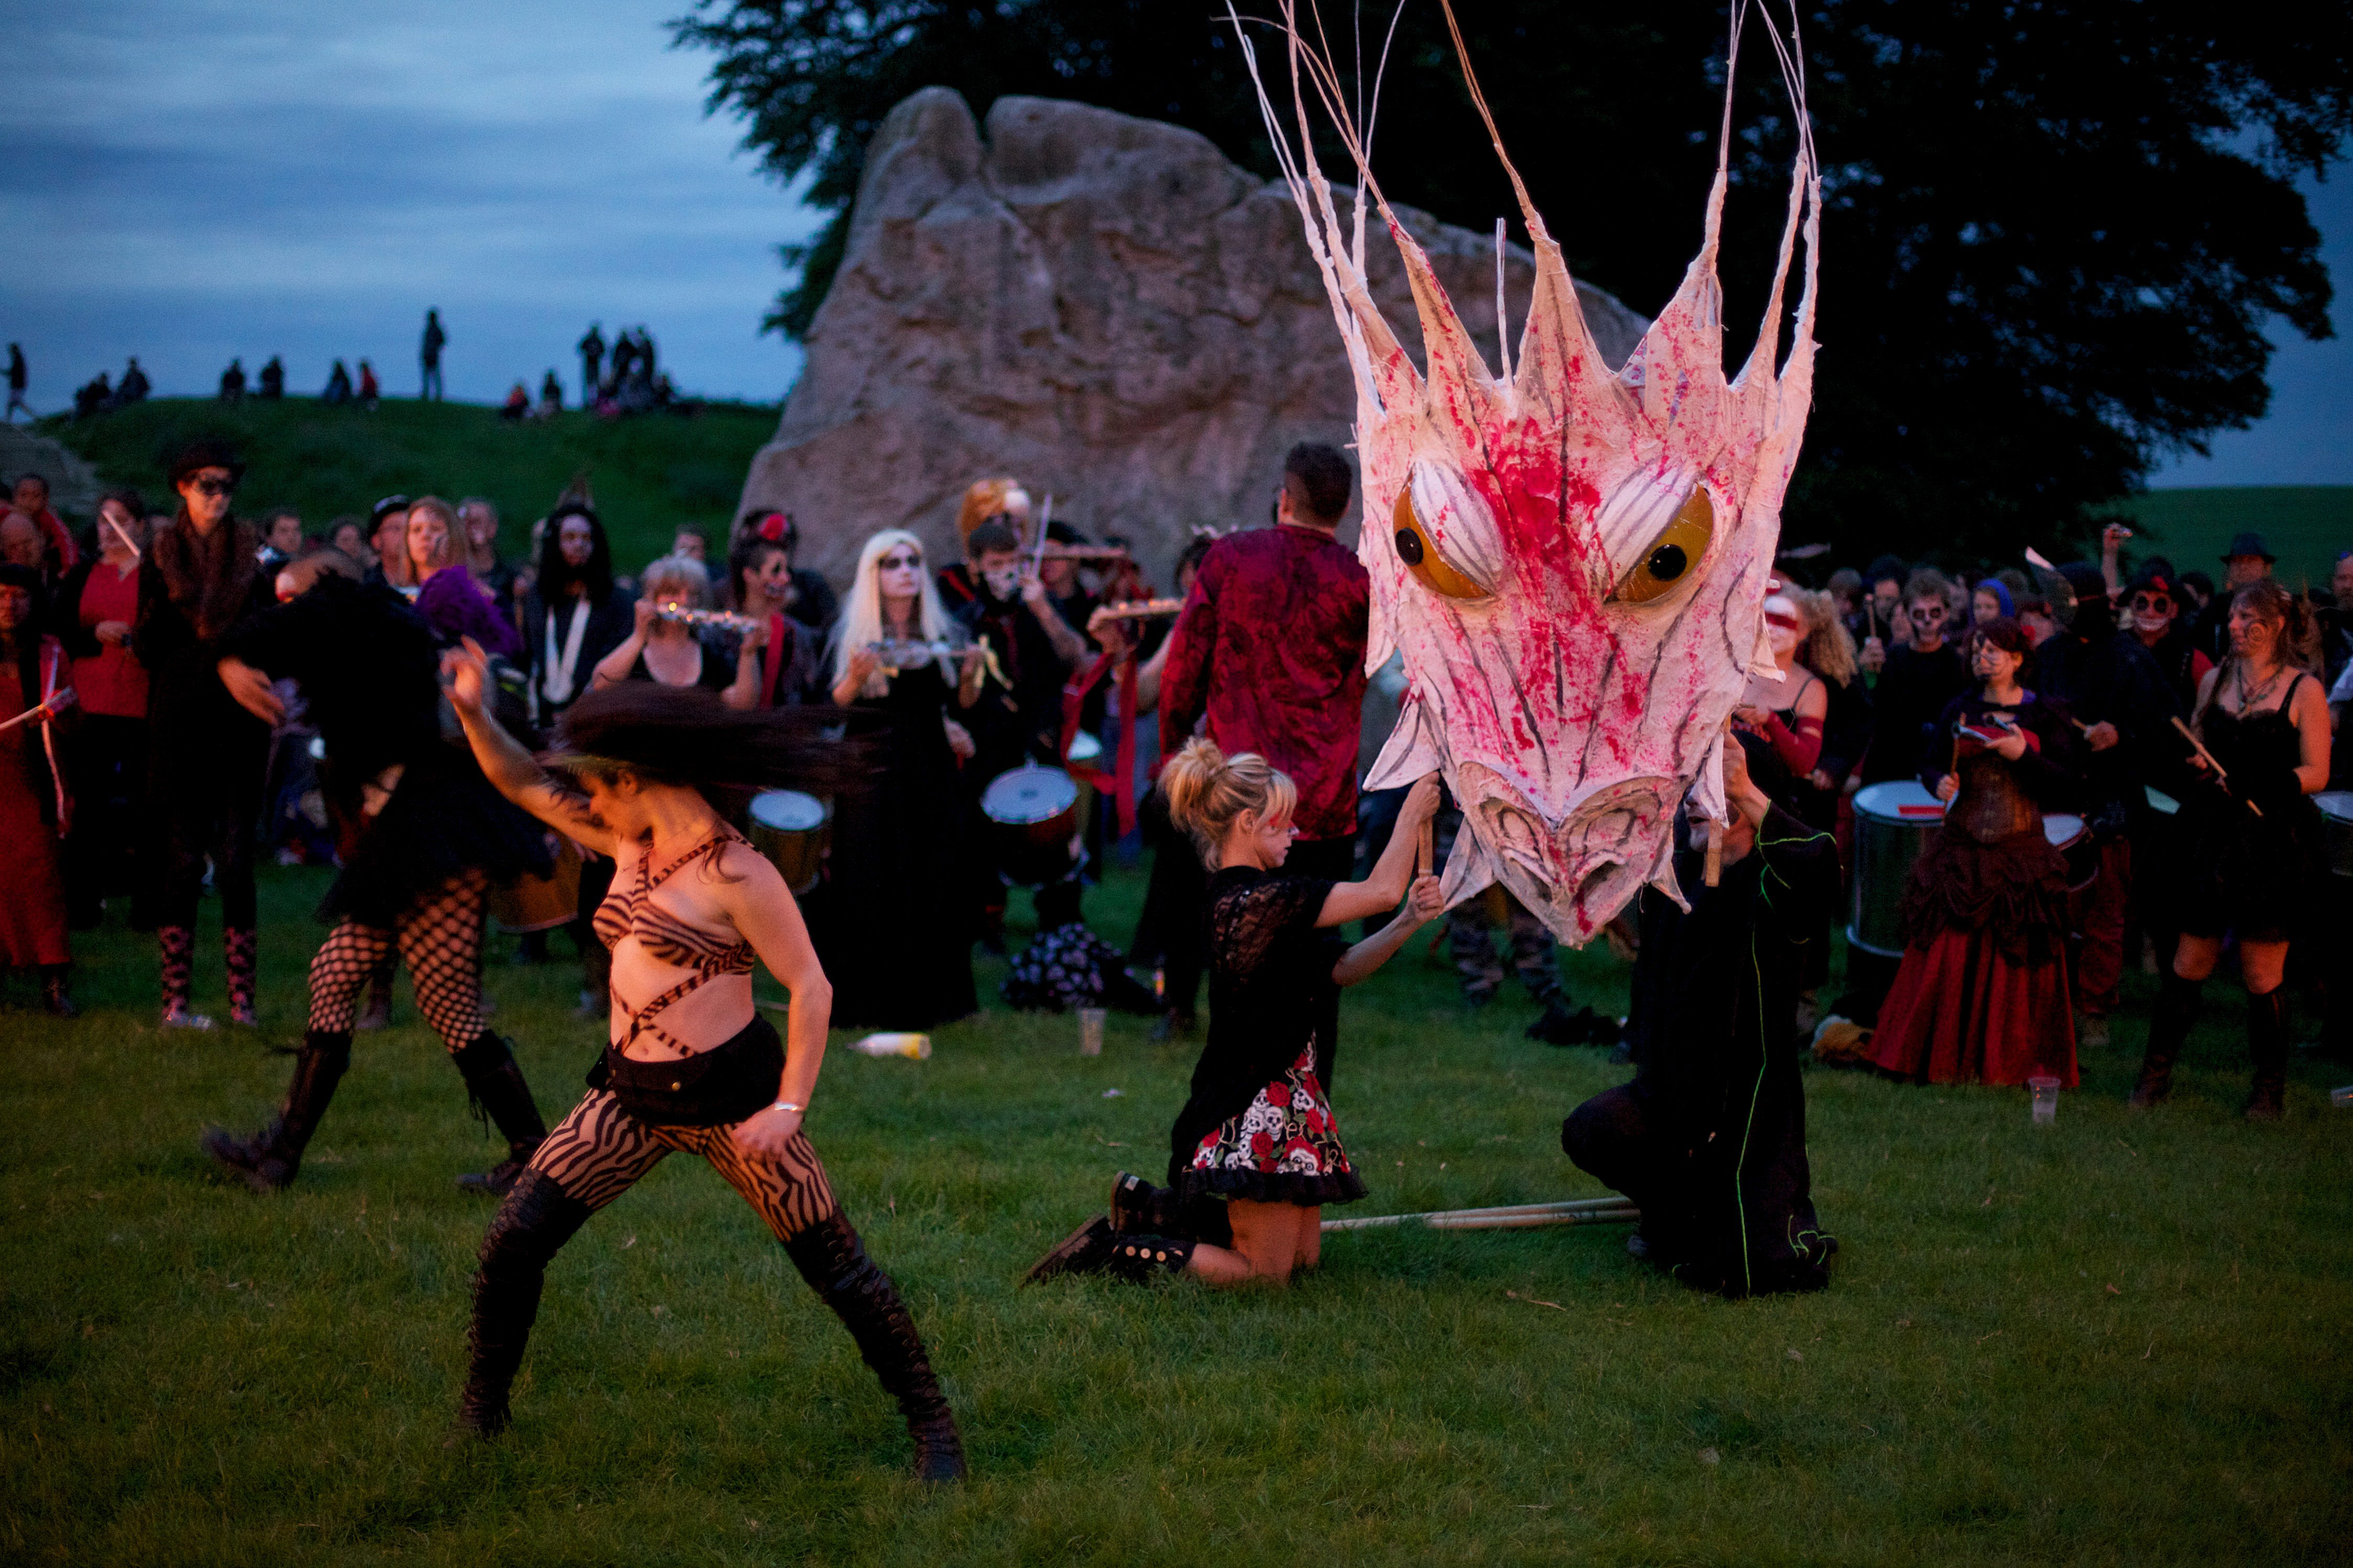 Music is played and torches are held aloft as revelers celebrate into the early hours on the summer solstice at the Avebury stone circle on June 21 2012.